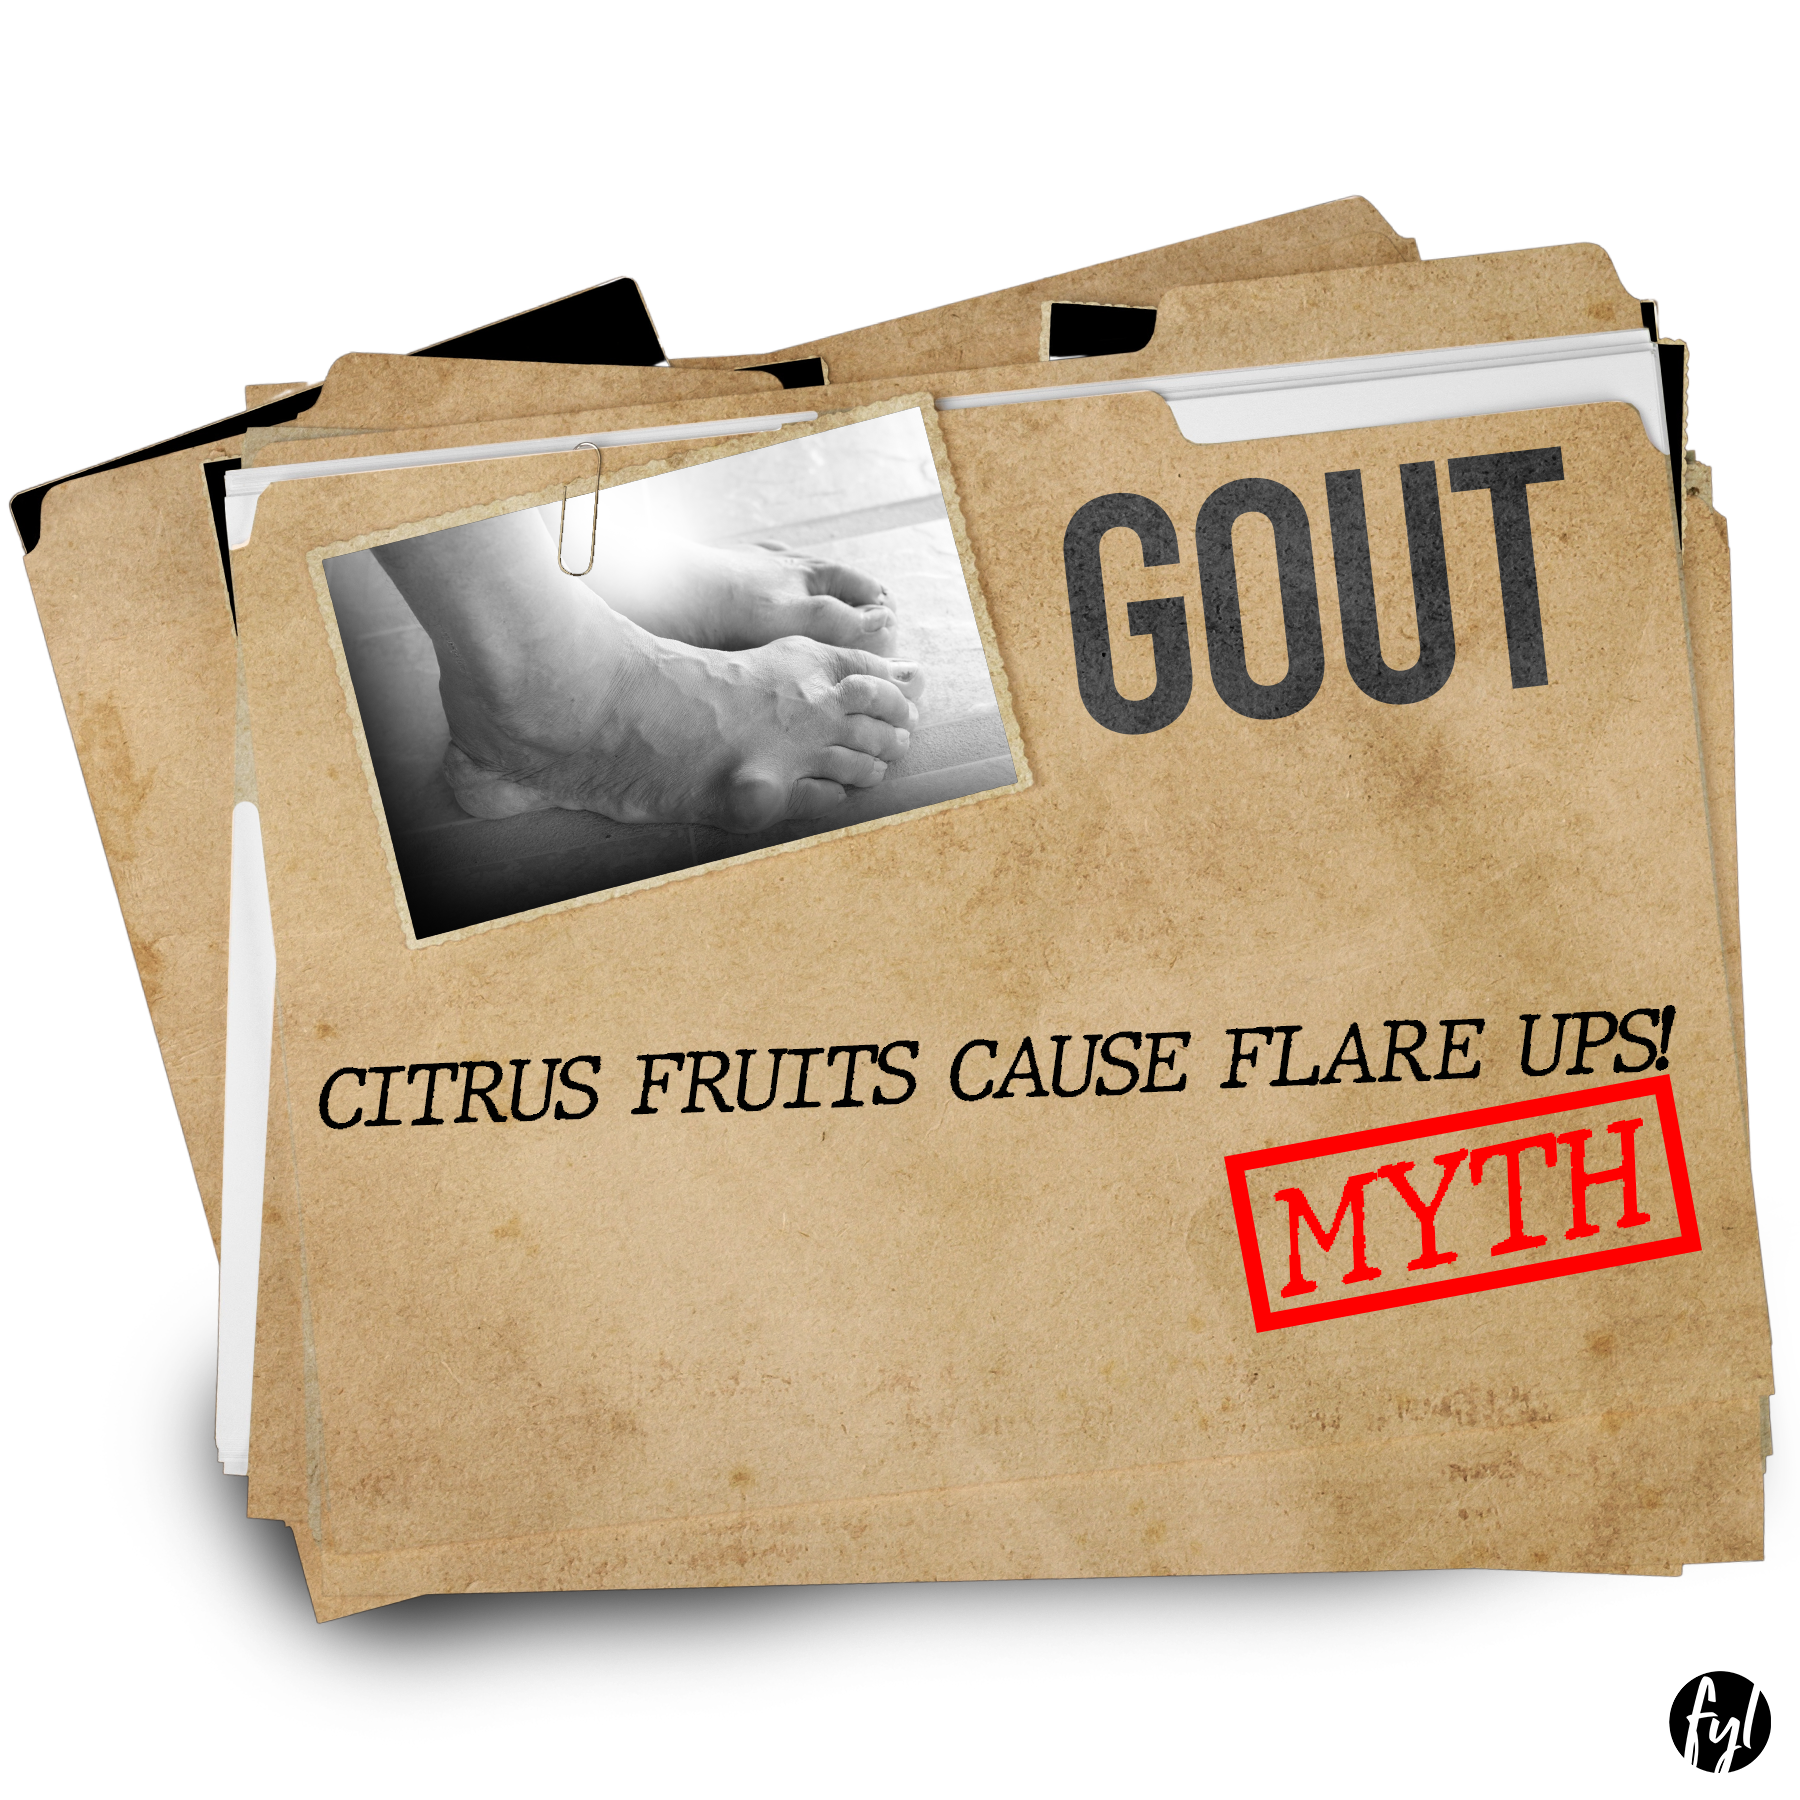 Gout Myths Debunked By a Dietitian